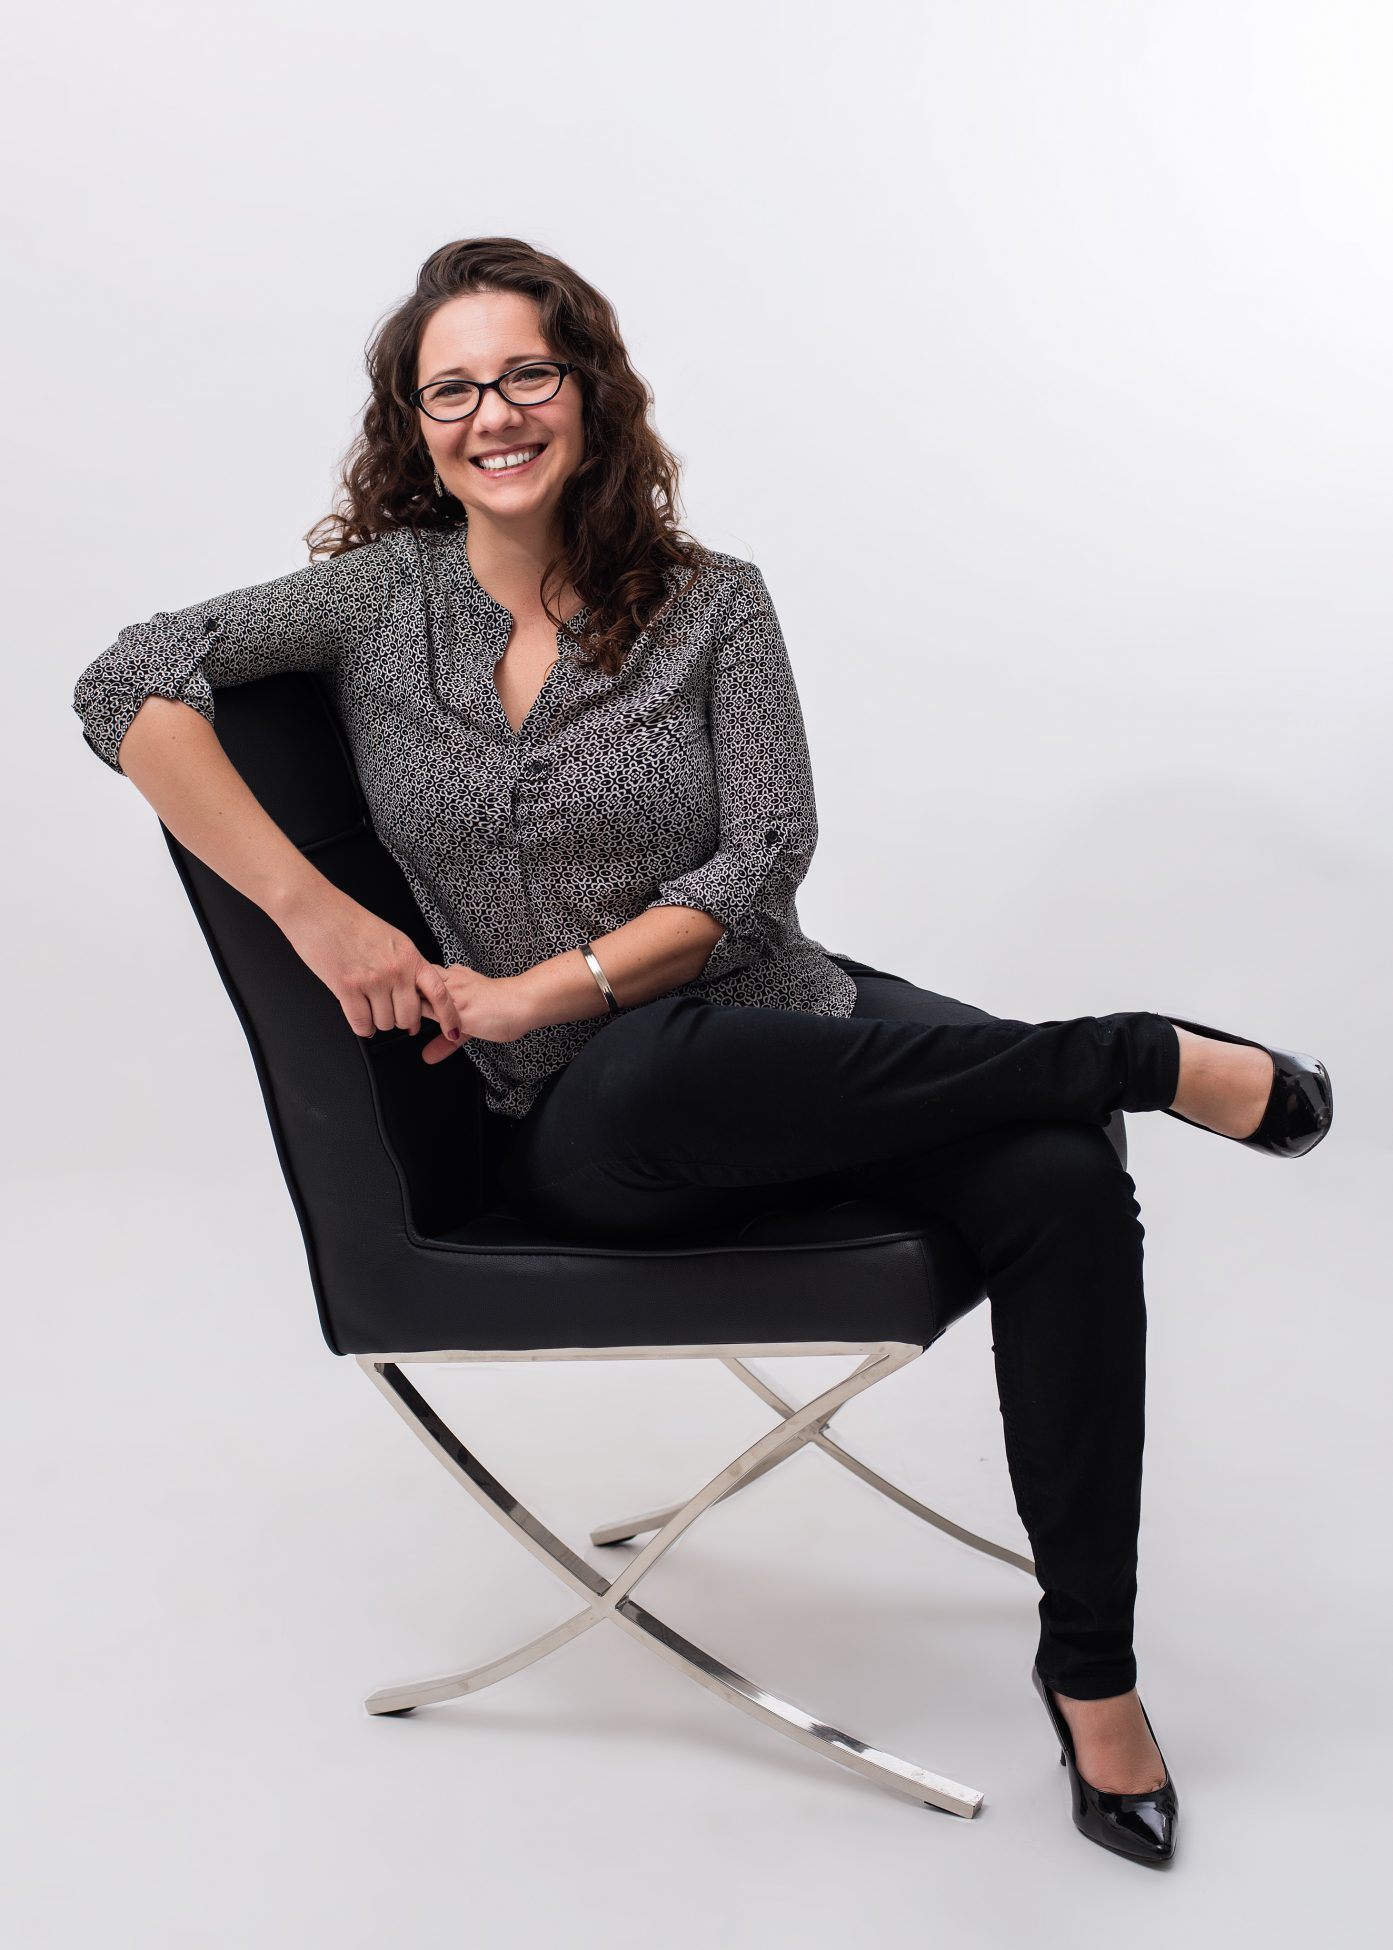 Seated business portrait of a woman by Salt Lake City photographer Purple Moss